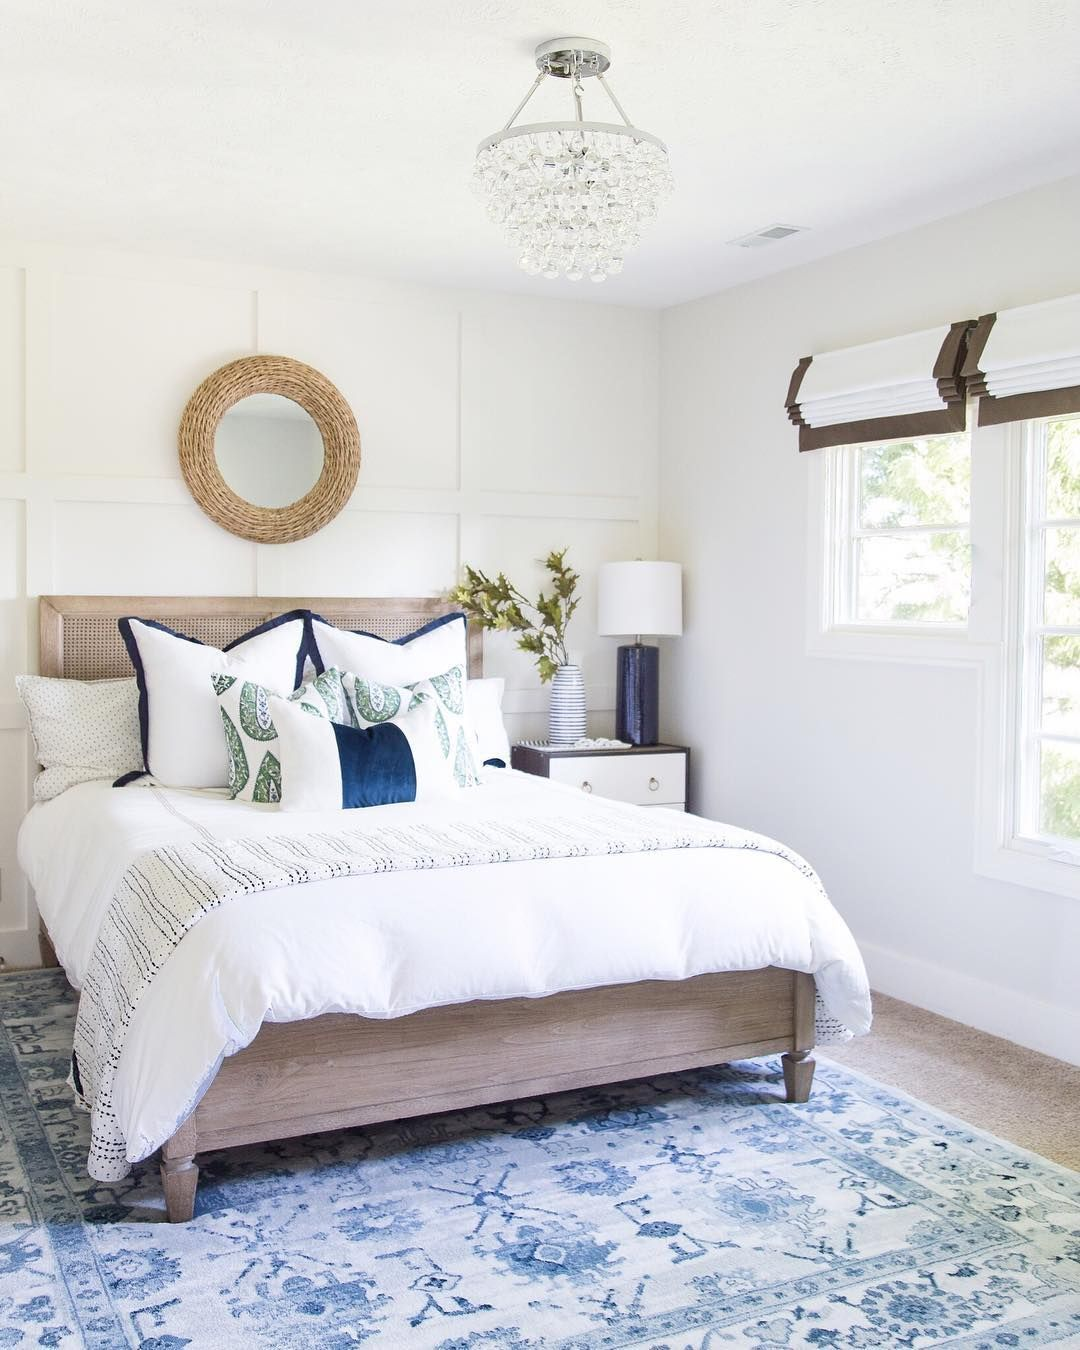 Guest Bedroom Decorating Ideas Guestbedroom 1 Bedroom Guest House Floor Plans Guest Bedroom Design Guest Bedroom Update Guest Bedrooms Guest Bedroom